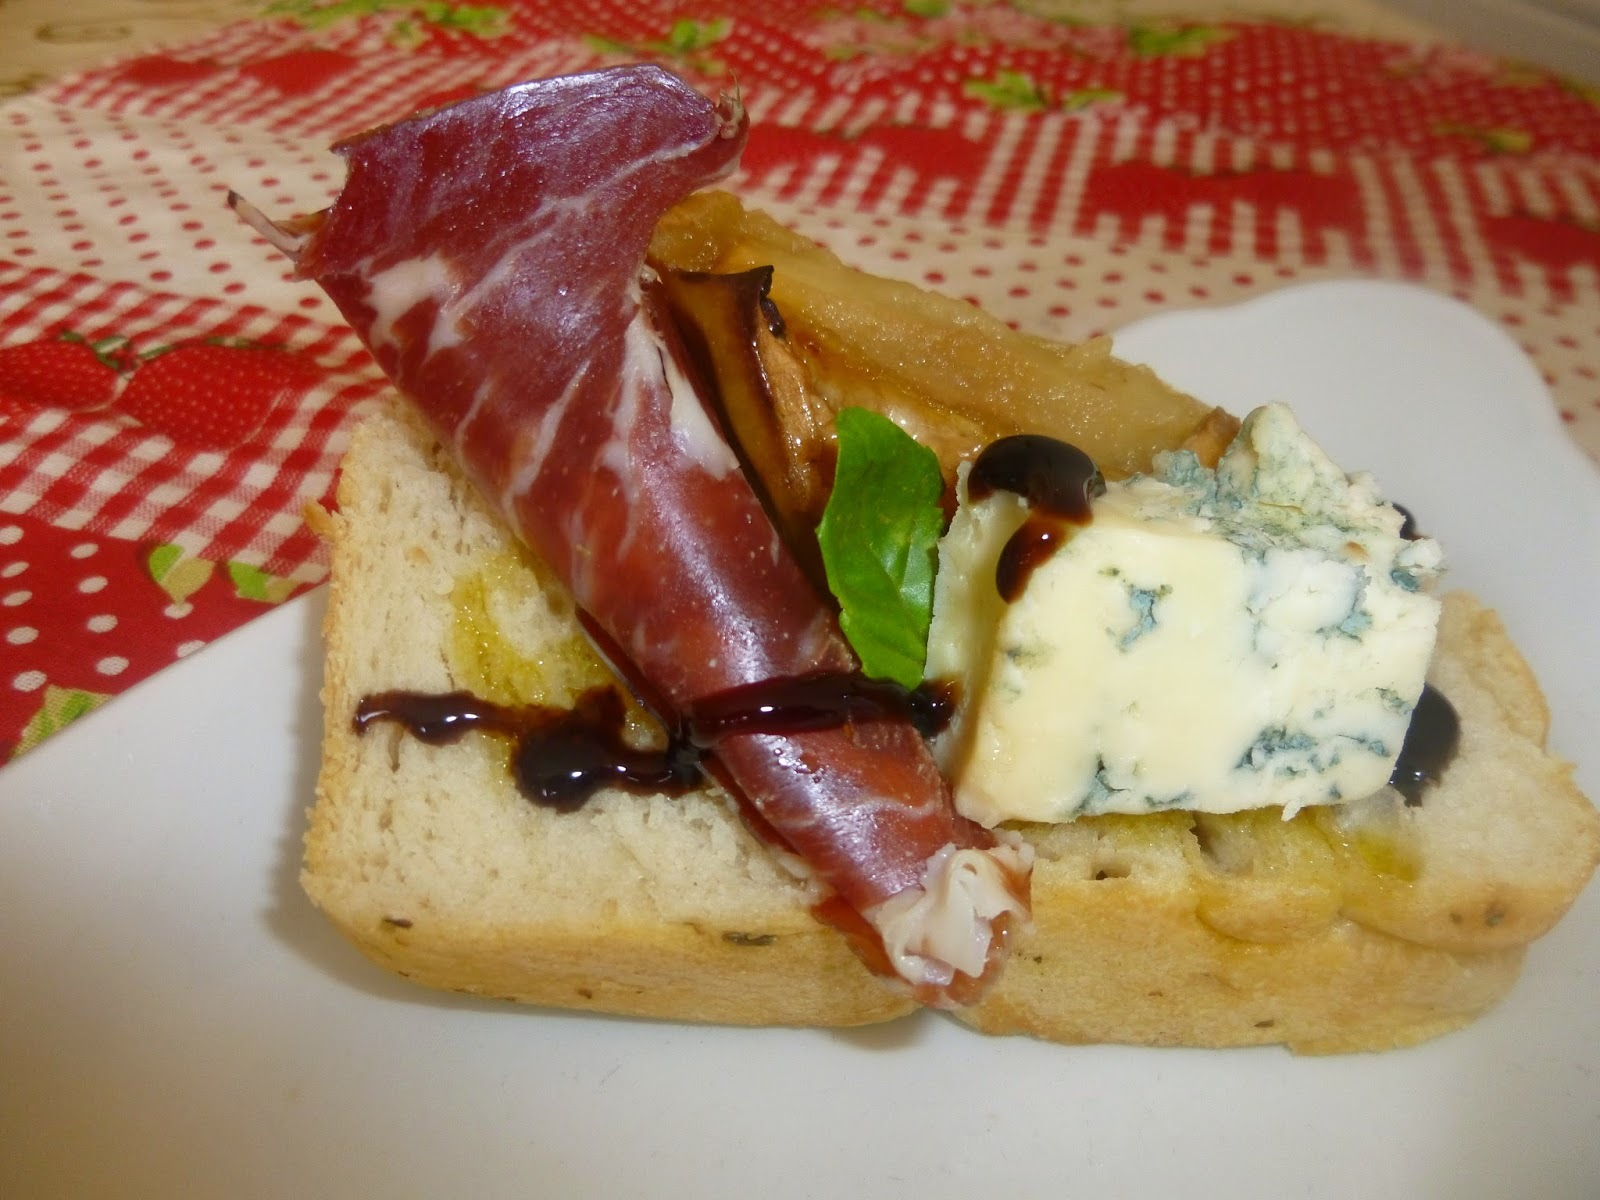 SERRANO HAM, BLUE CHEESE AND ROASTED APPLE